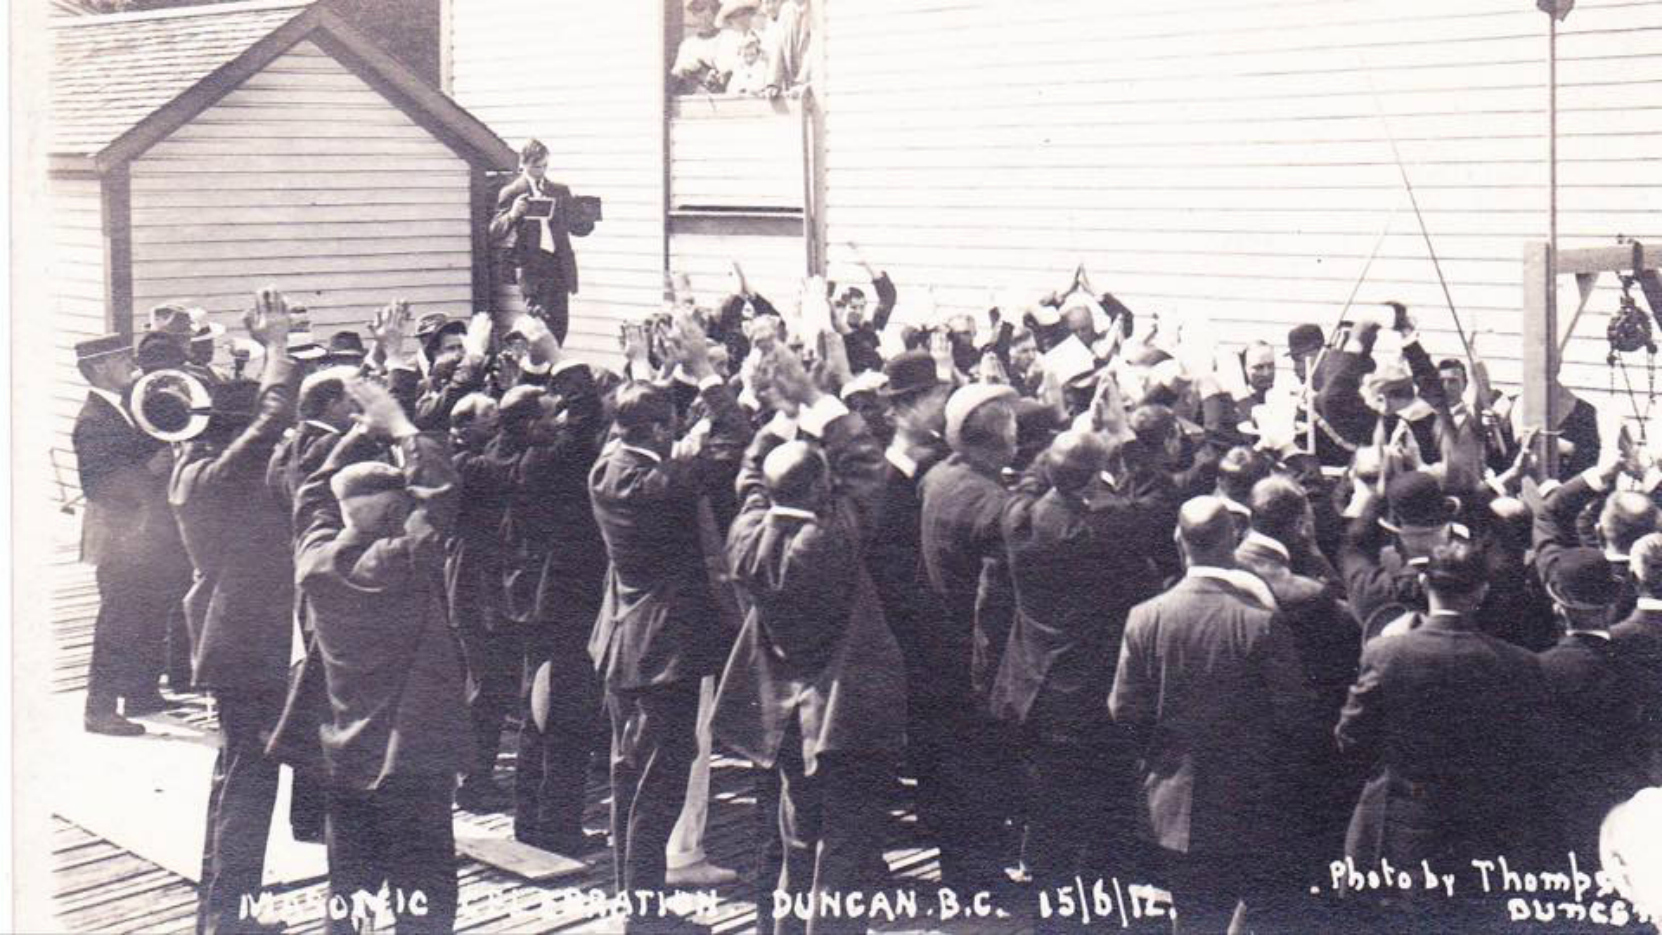 Corner Stone Ceremony for the present day Duncan Masonic Temple, 15 June 1912. Mrs. Norcross' chicken coop is visible in the left rear.